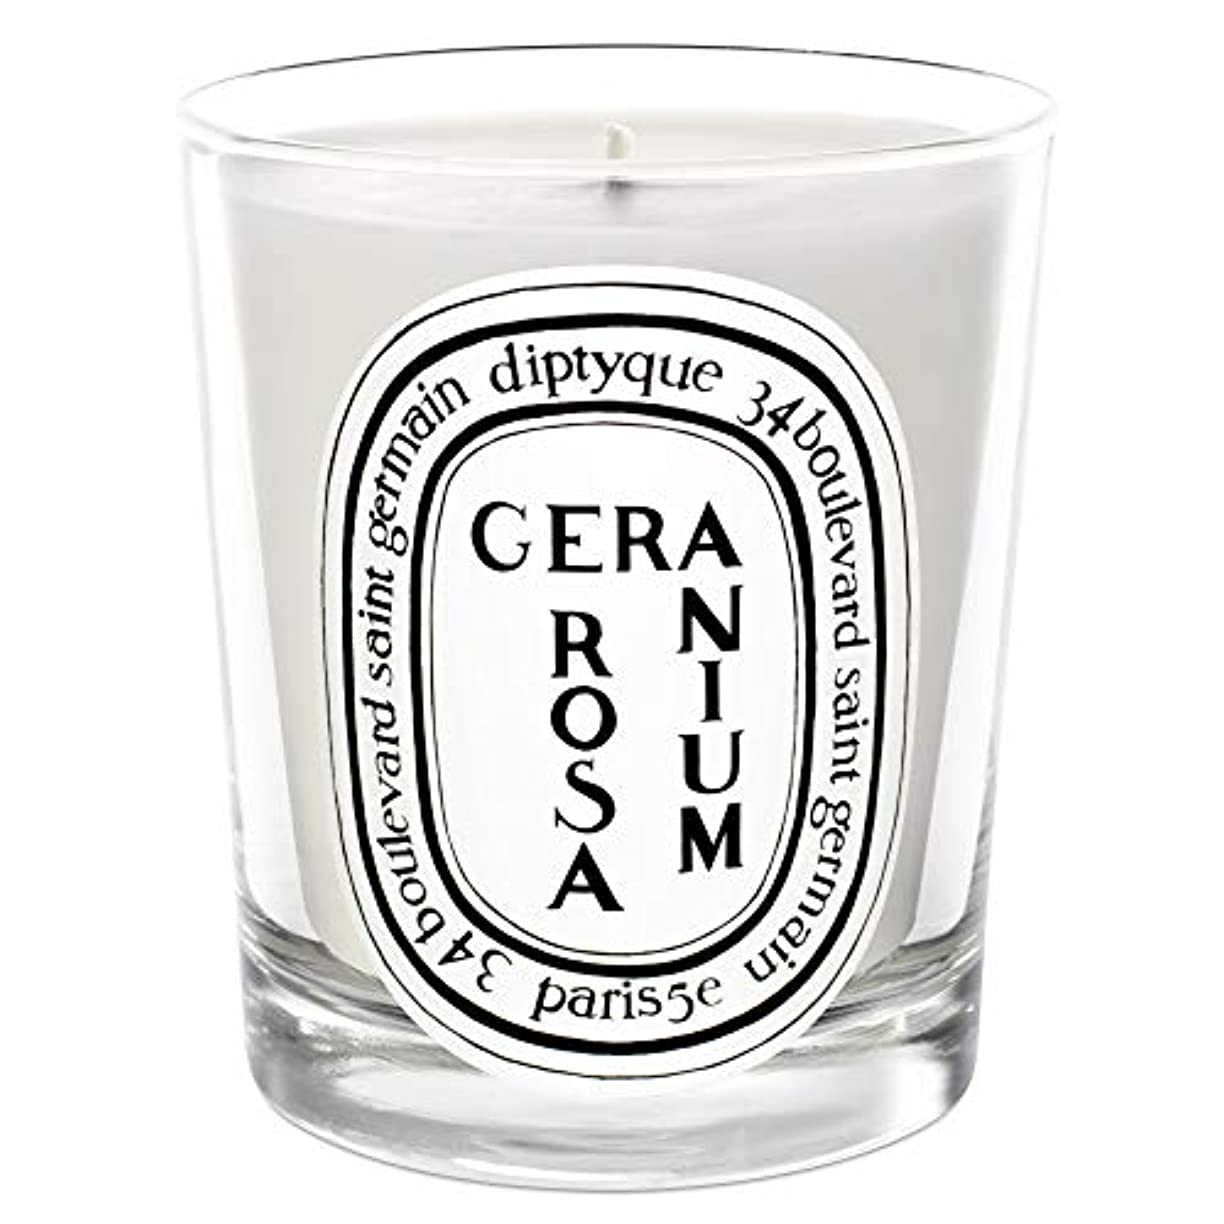 [Diptyque] Diptyqueゼラニウムローザ香りのキャンドル190グラム - Diptyque Geranium Rosa Scented Candle 190g [並行輸入品]